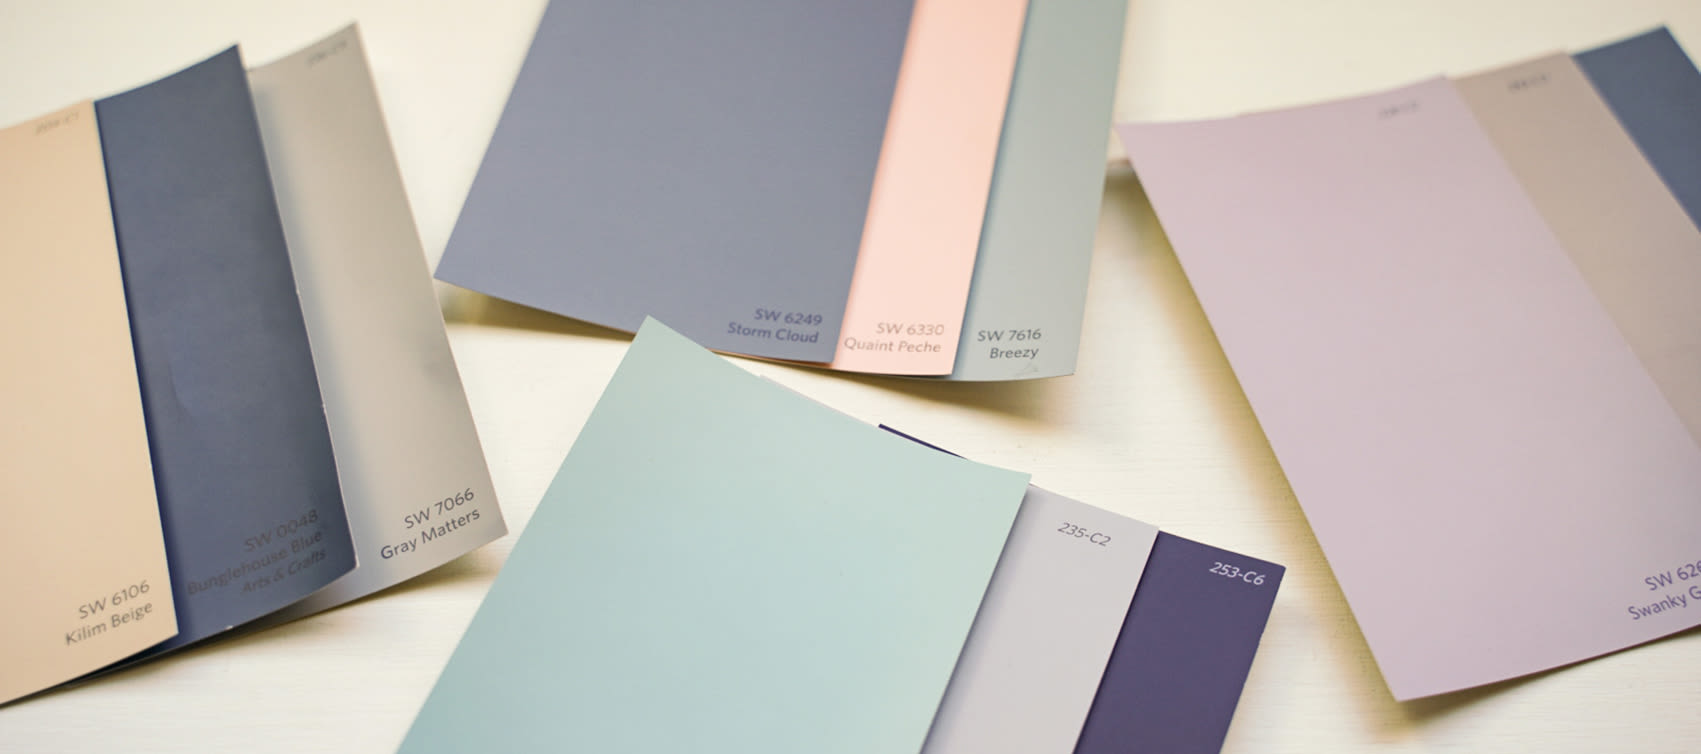 Paint Swatches at Seventeen Mile Drive Village Apartment Homes in Pacific Grove